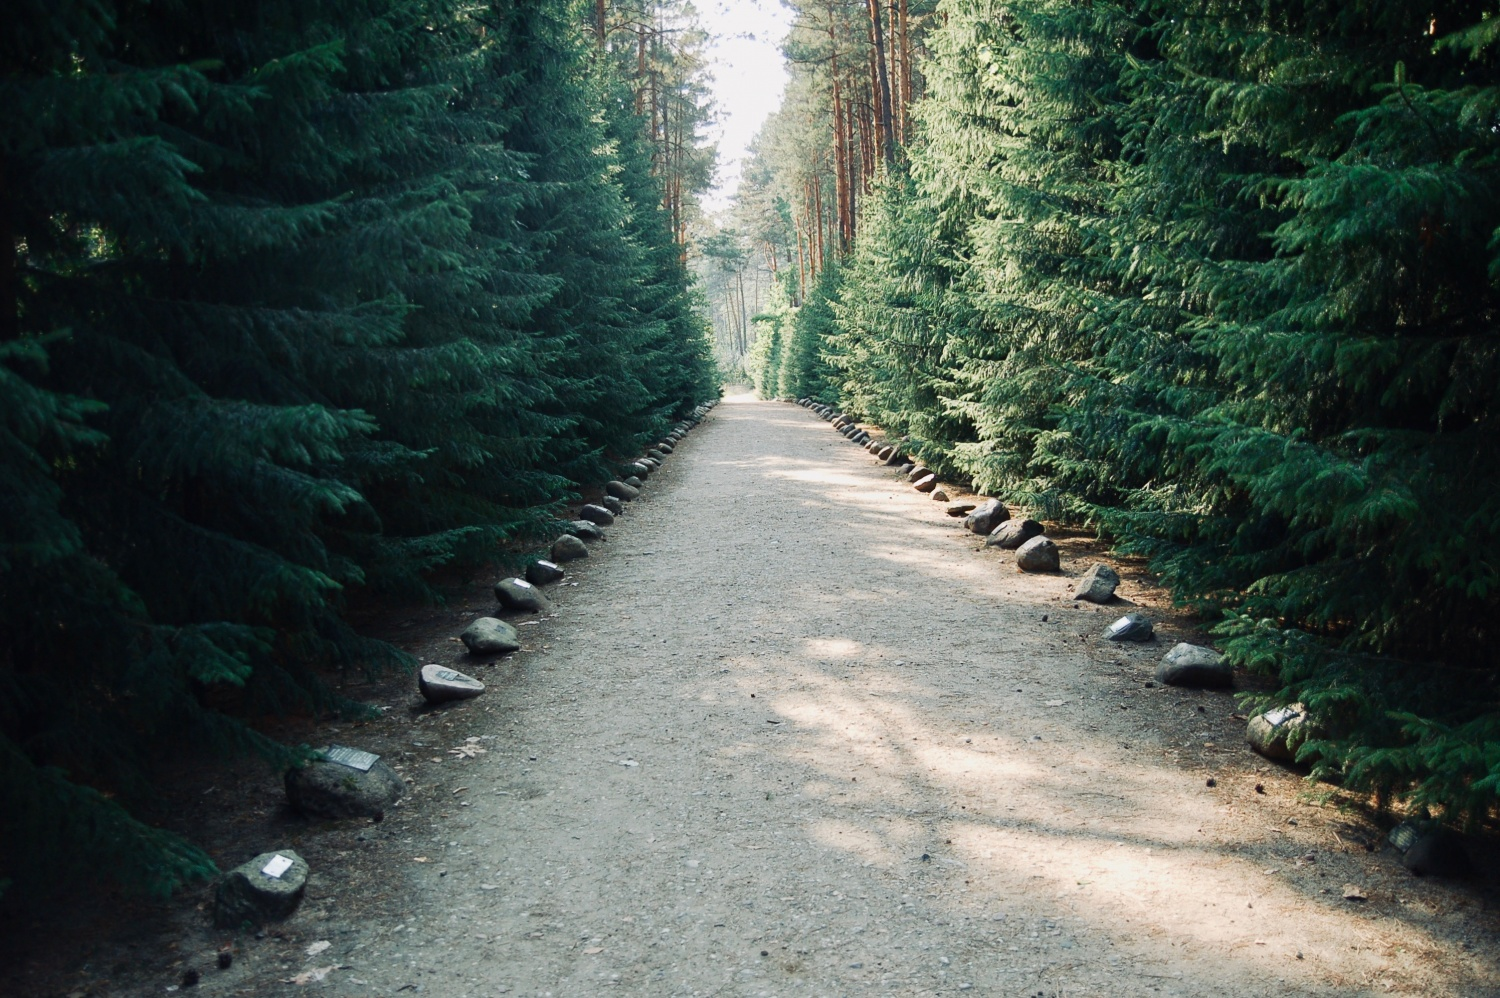 The Road to Heaven at the Sobibór death camp in Poland, a tree lined dirt roads leading to the camp and the victims' deaths.